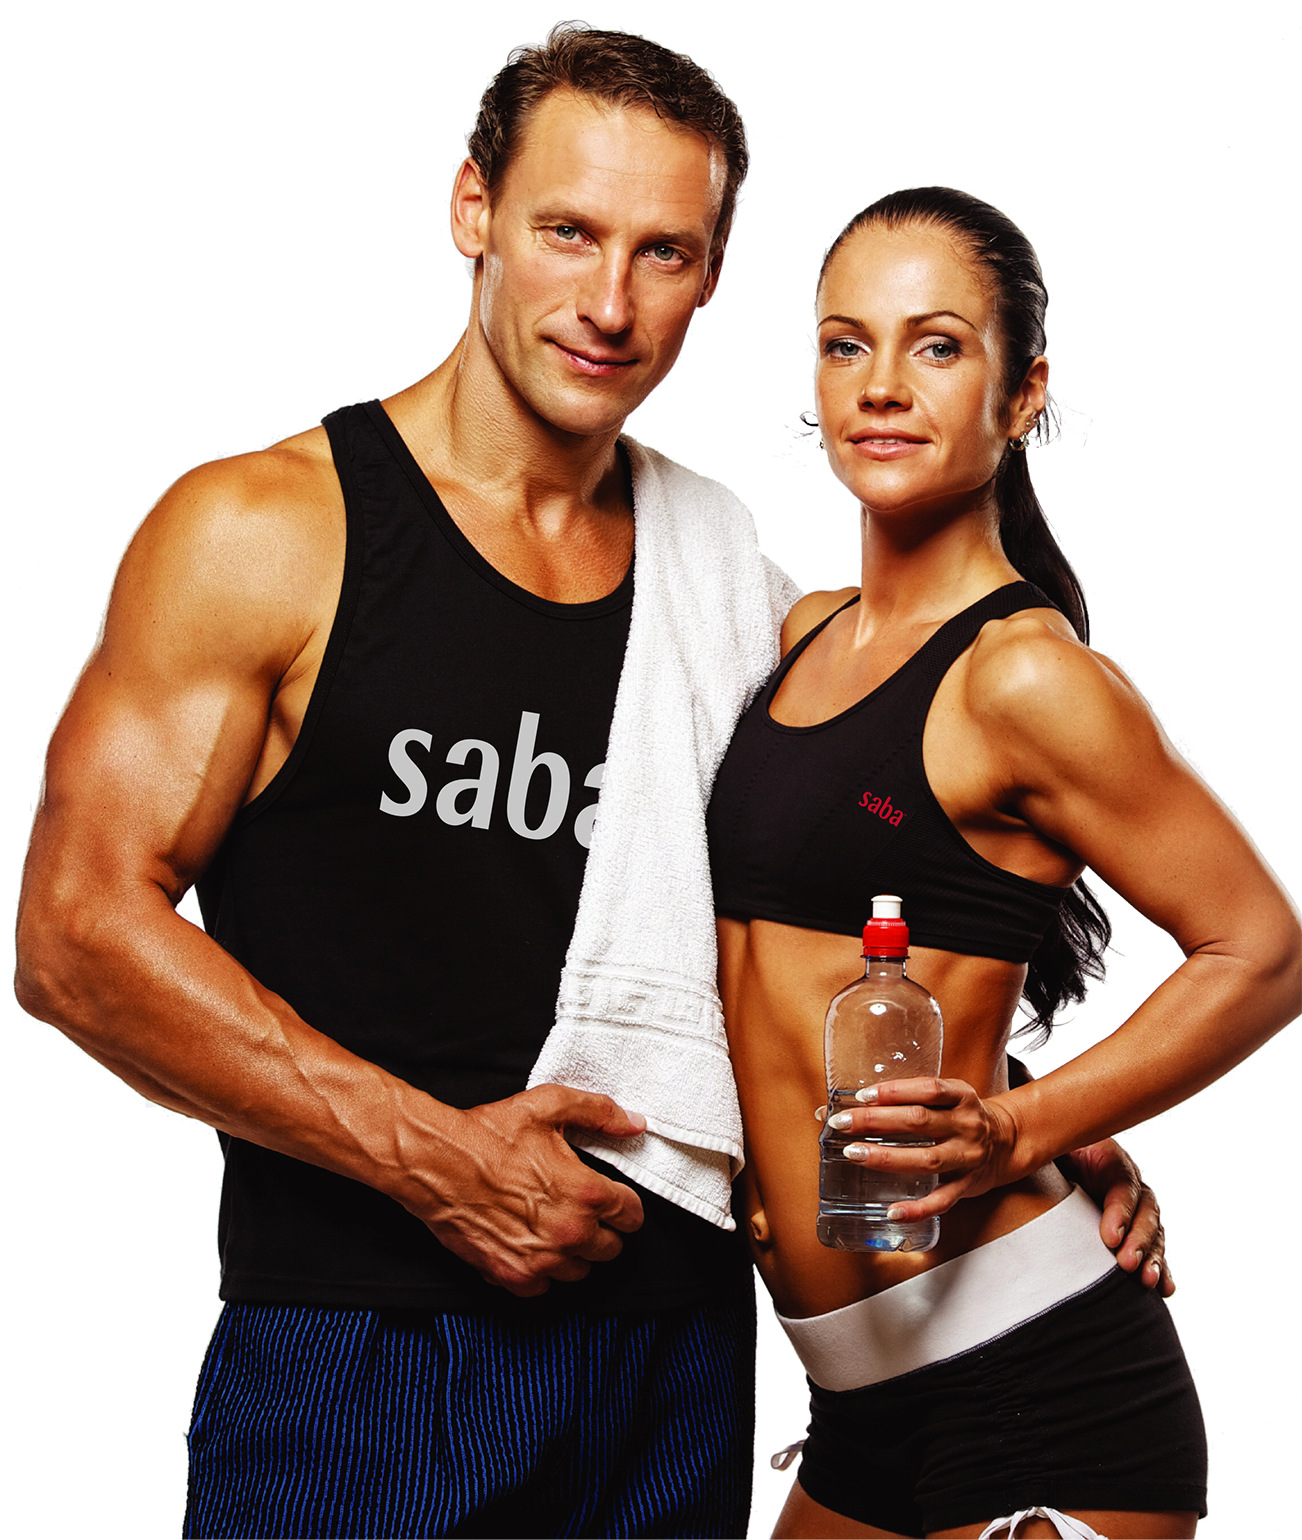 Model supporting Saba. Saba weight management, best weight loss, Best metabolism booster, Best fat Burn Supplement